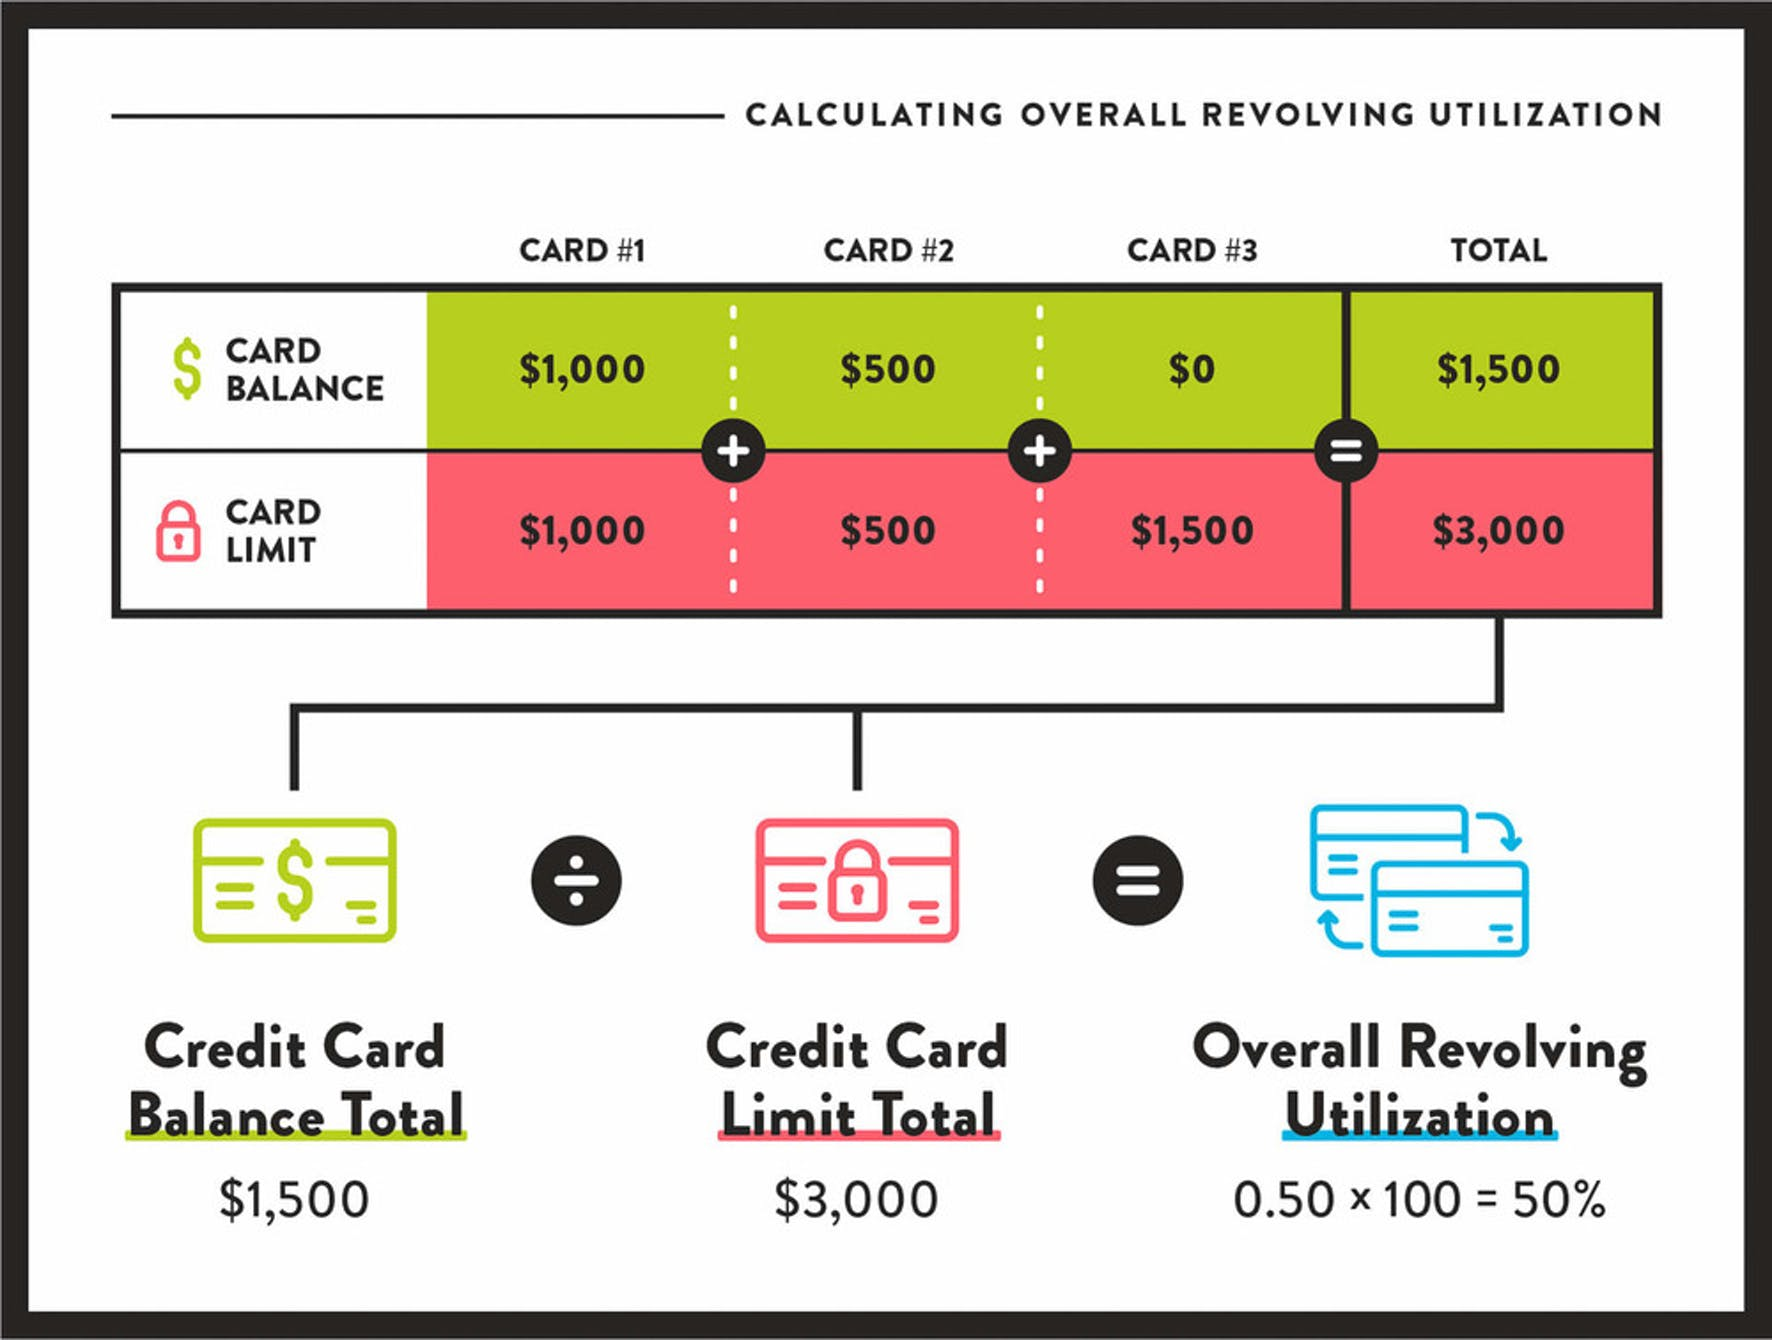 how to calculate overall revolving utilization. Credit card balance total divided by credit card limit total equal to overall revolving utilization.